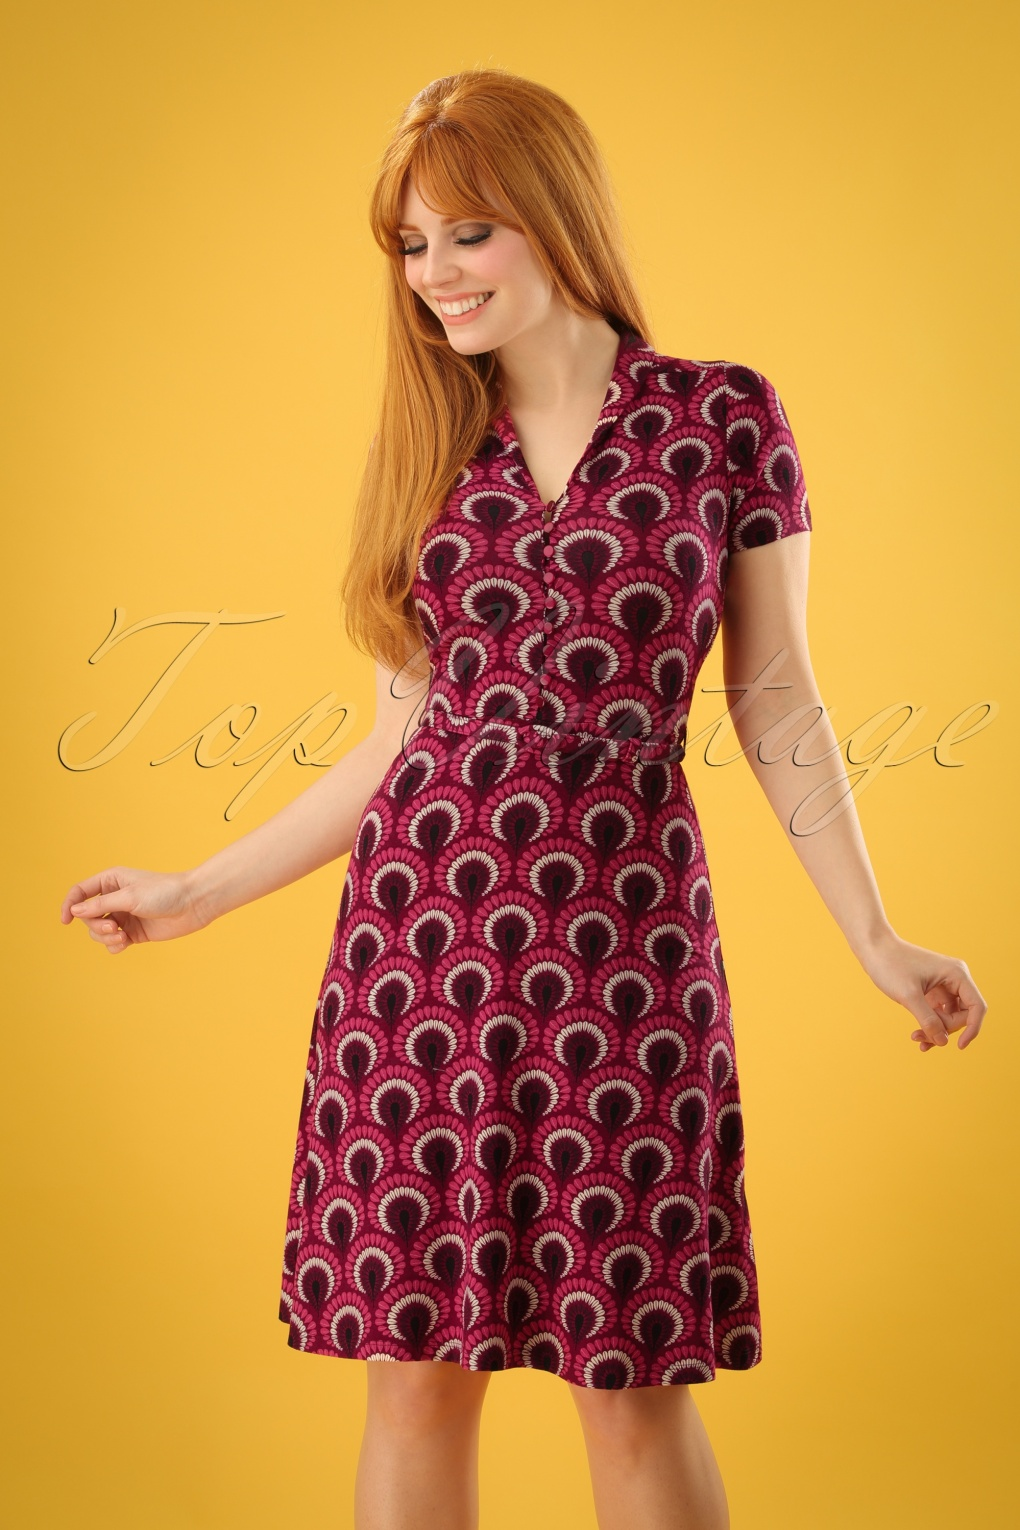 60s Plus Size Retro Dresses, Clothing, Costumes | 70s Dresses 60s Emmy Peacock Dress in Beaujolais Red £88.21 AT vintagedancer.com